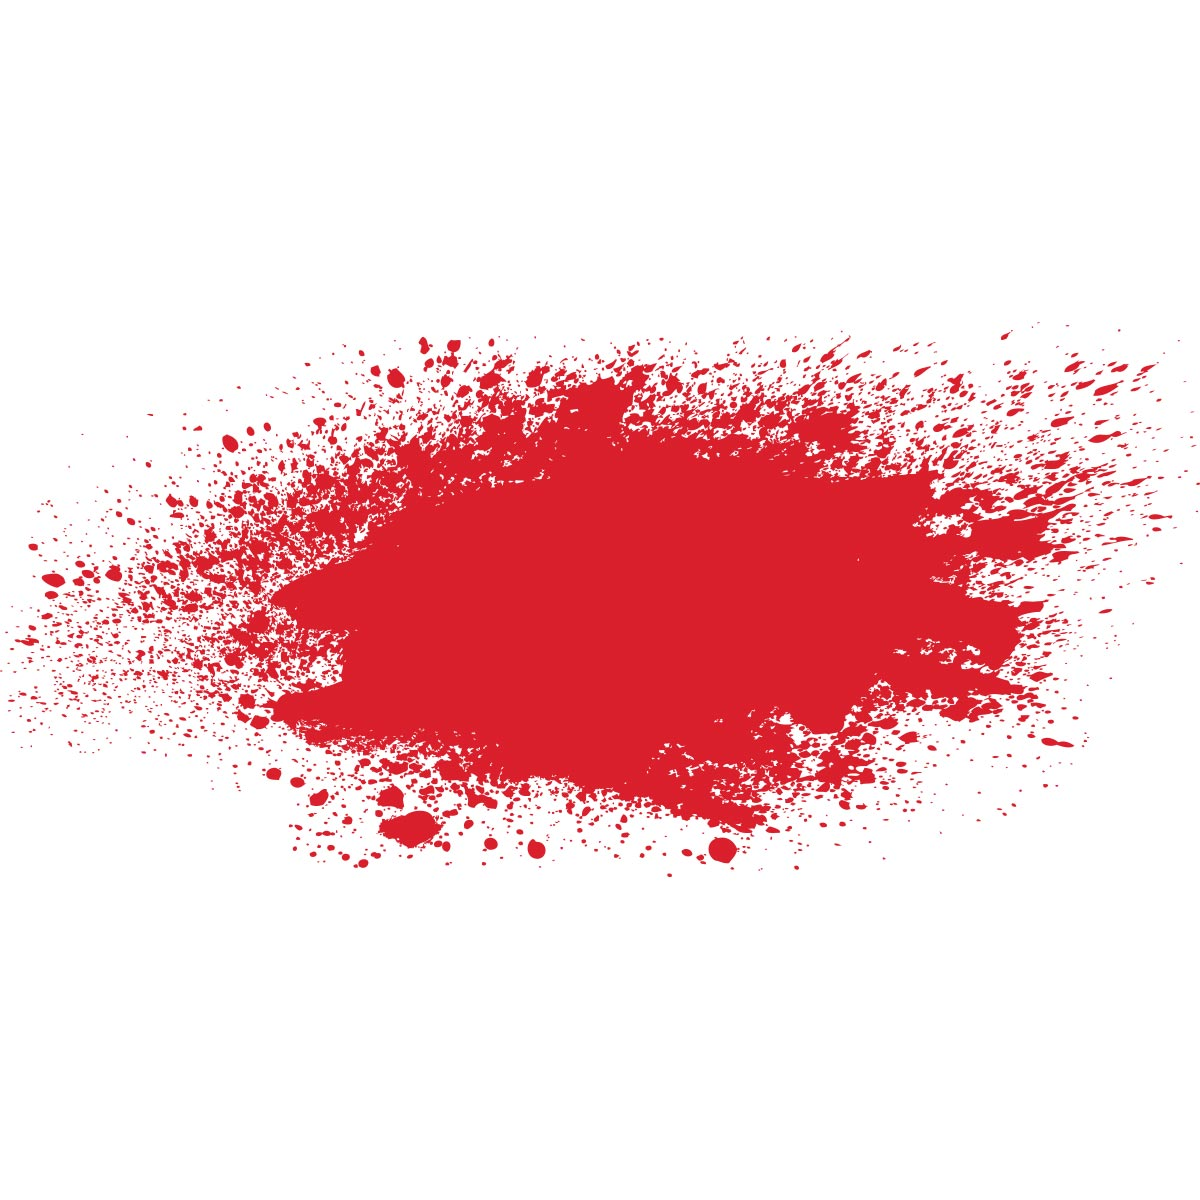 FolkArt ® Stencil Spray™ Acrylic Paint - Bright Red, 2 oz.